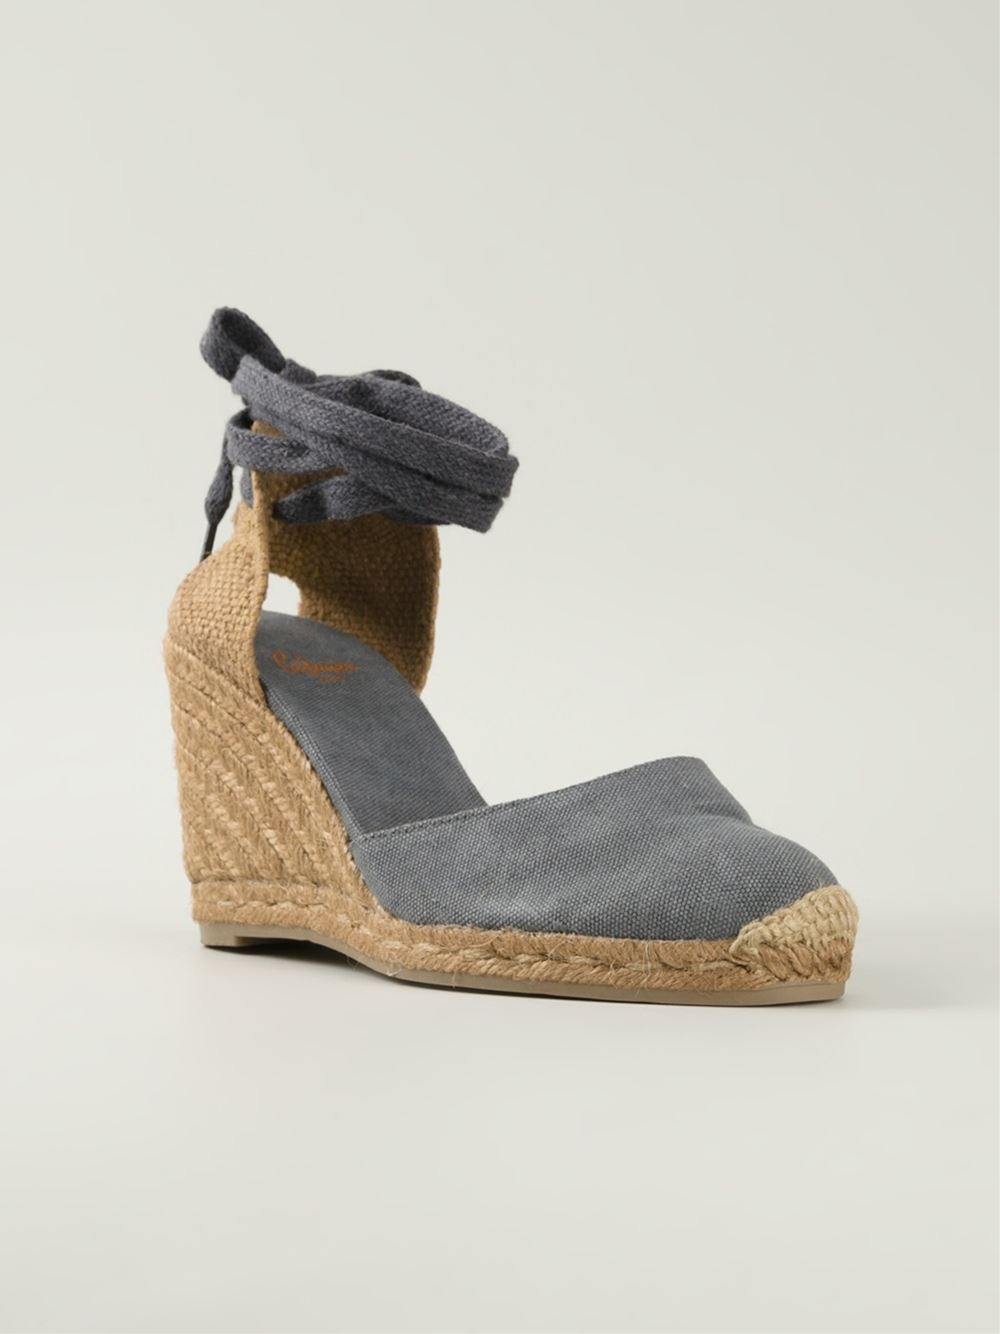 0a79547a276 Lyst - Castaner Wedge Espadrille Sandals in Gray